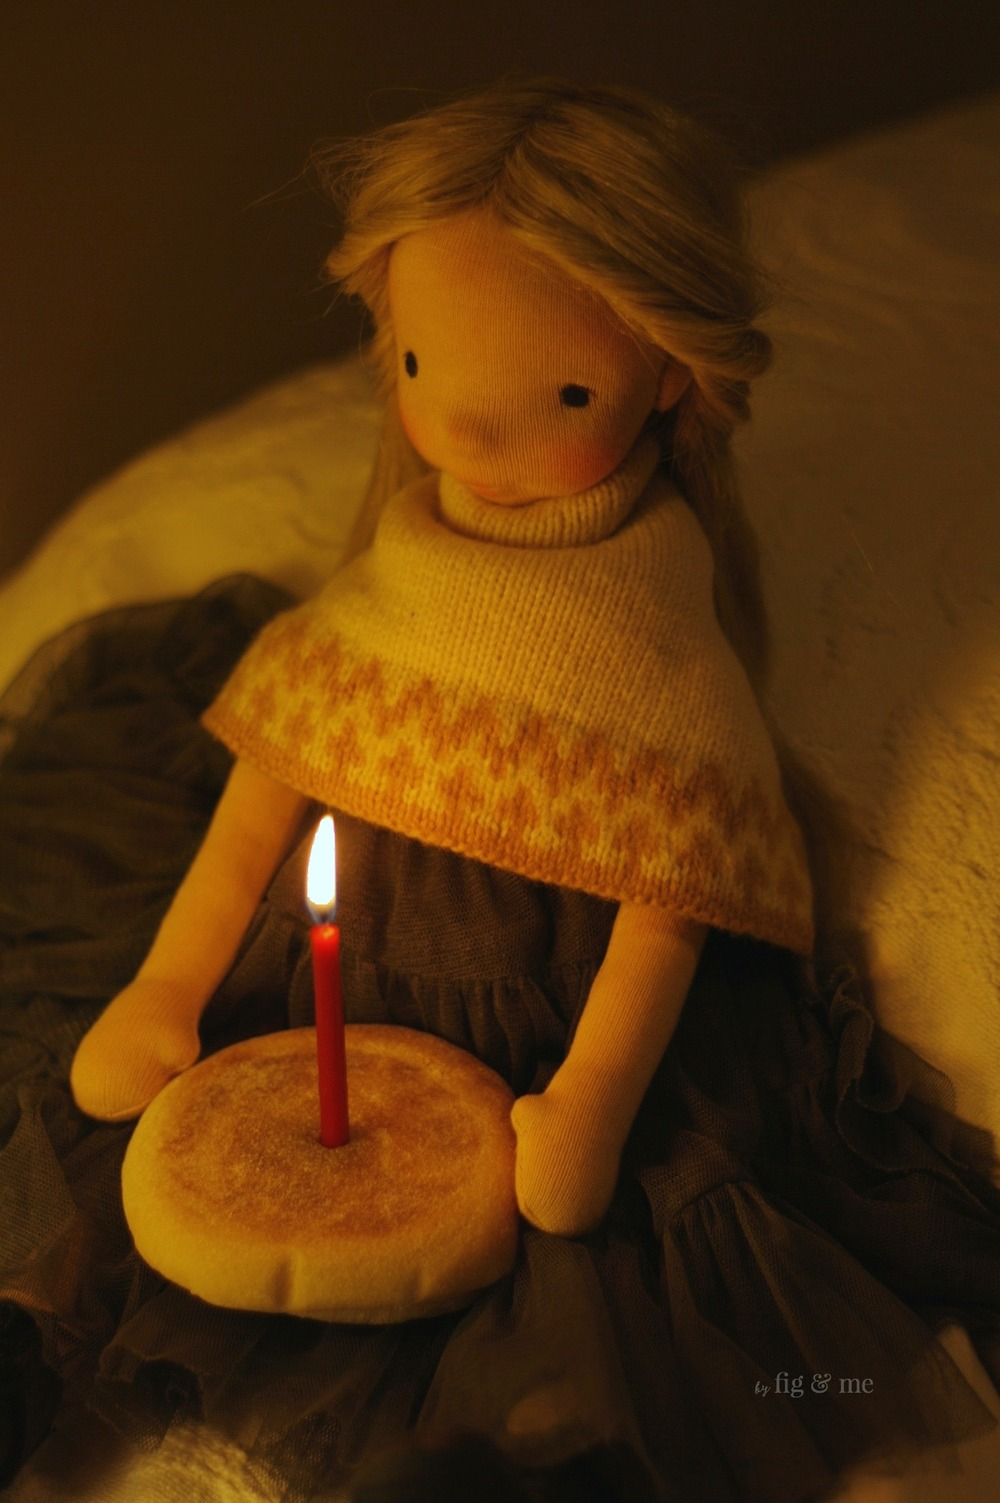 Nova celebrates her birthday with a lucky candle, by Fig and Me.